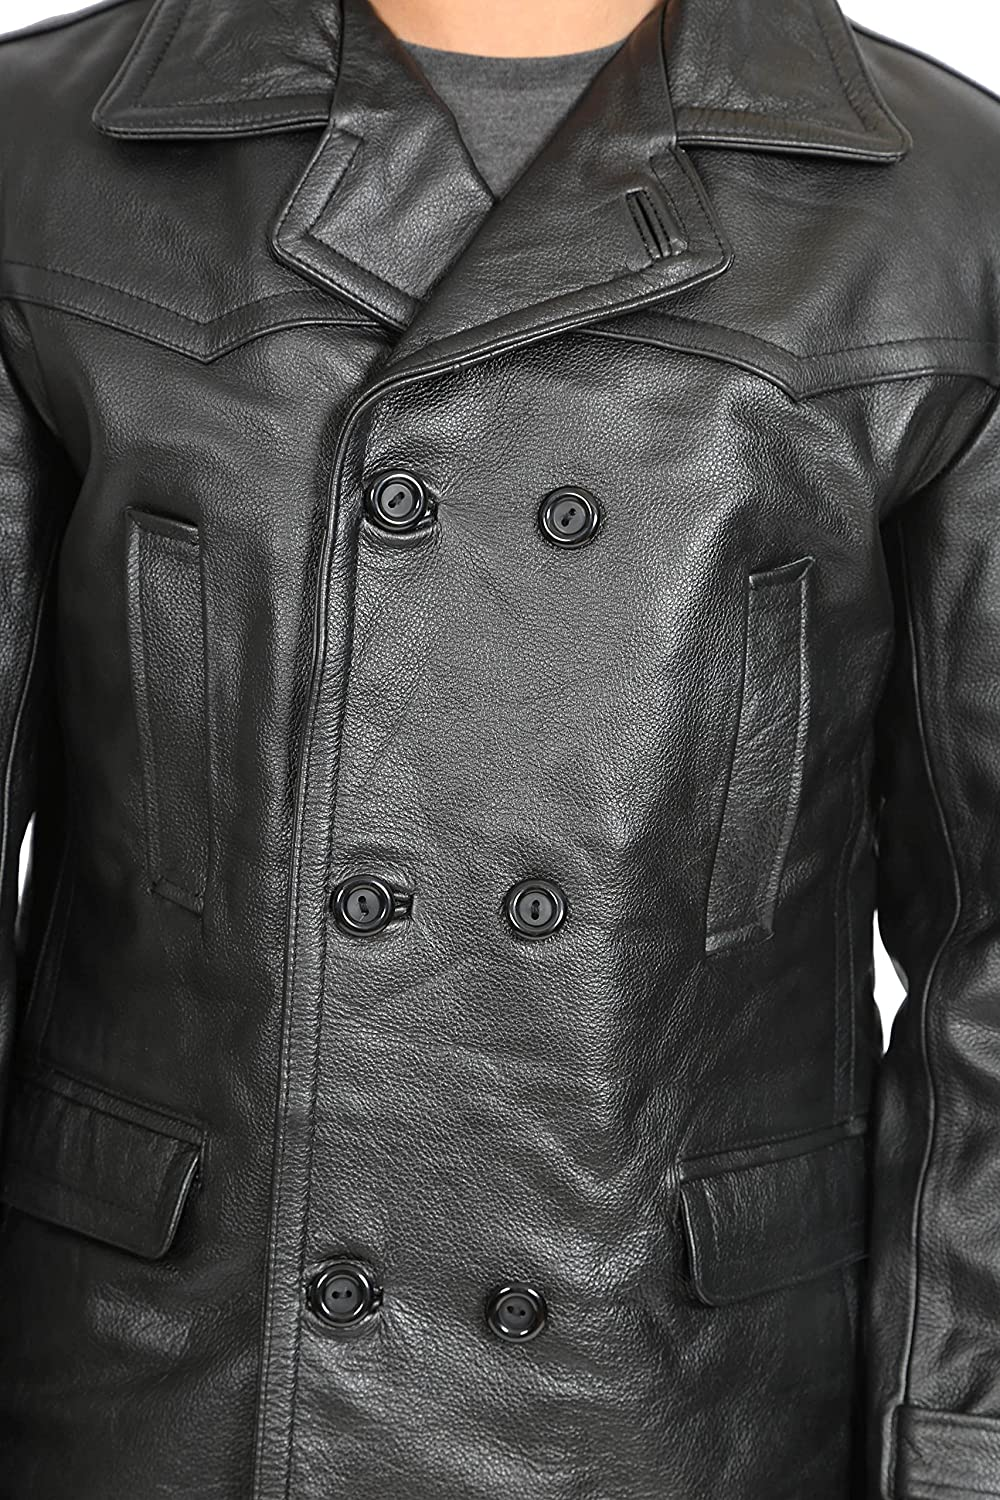 A1 FASHION GOODS Mens Double Breasted Trench Black Leather Jacket Fitted Military Coat Ernest